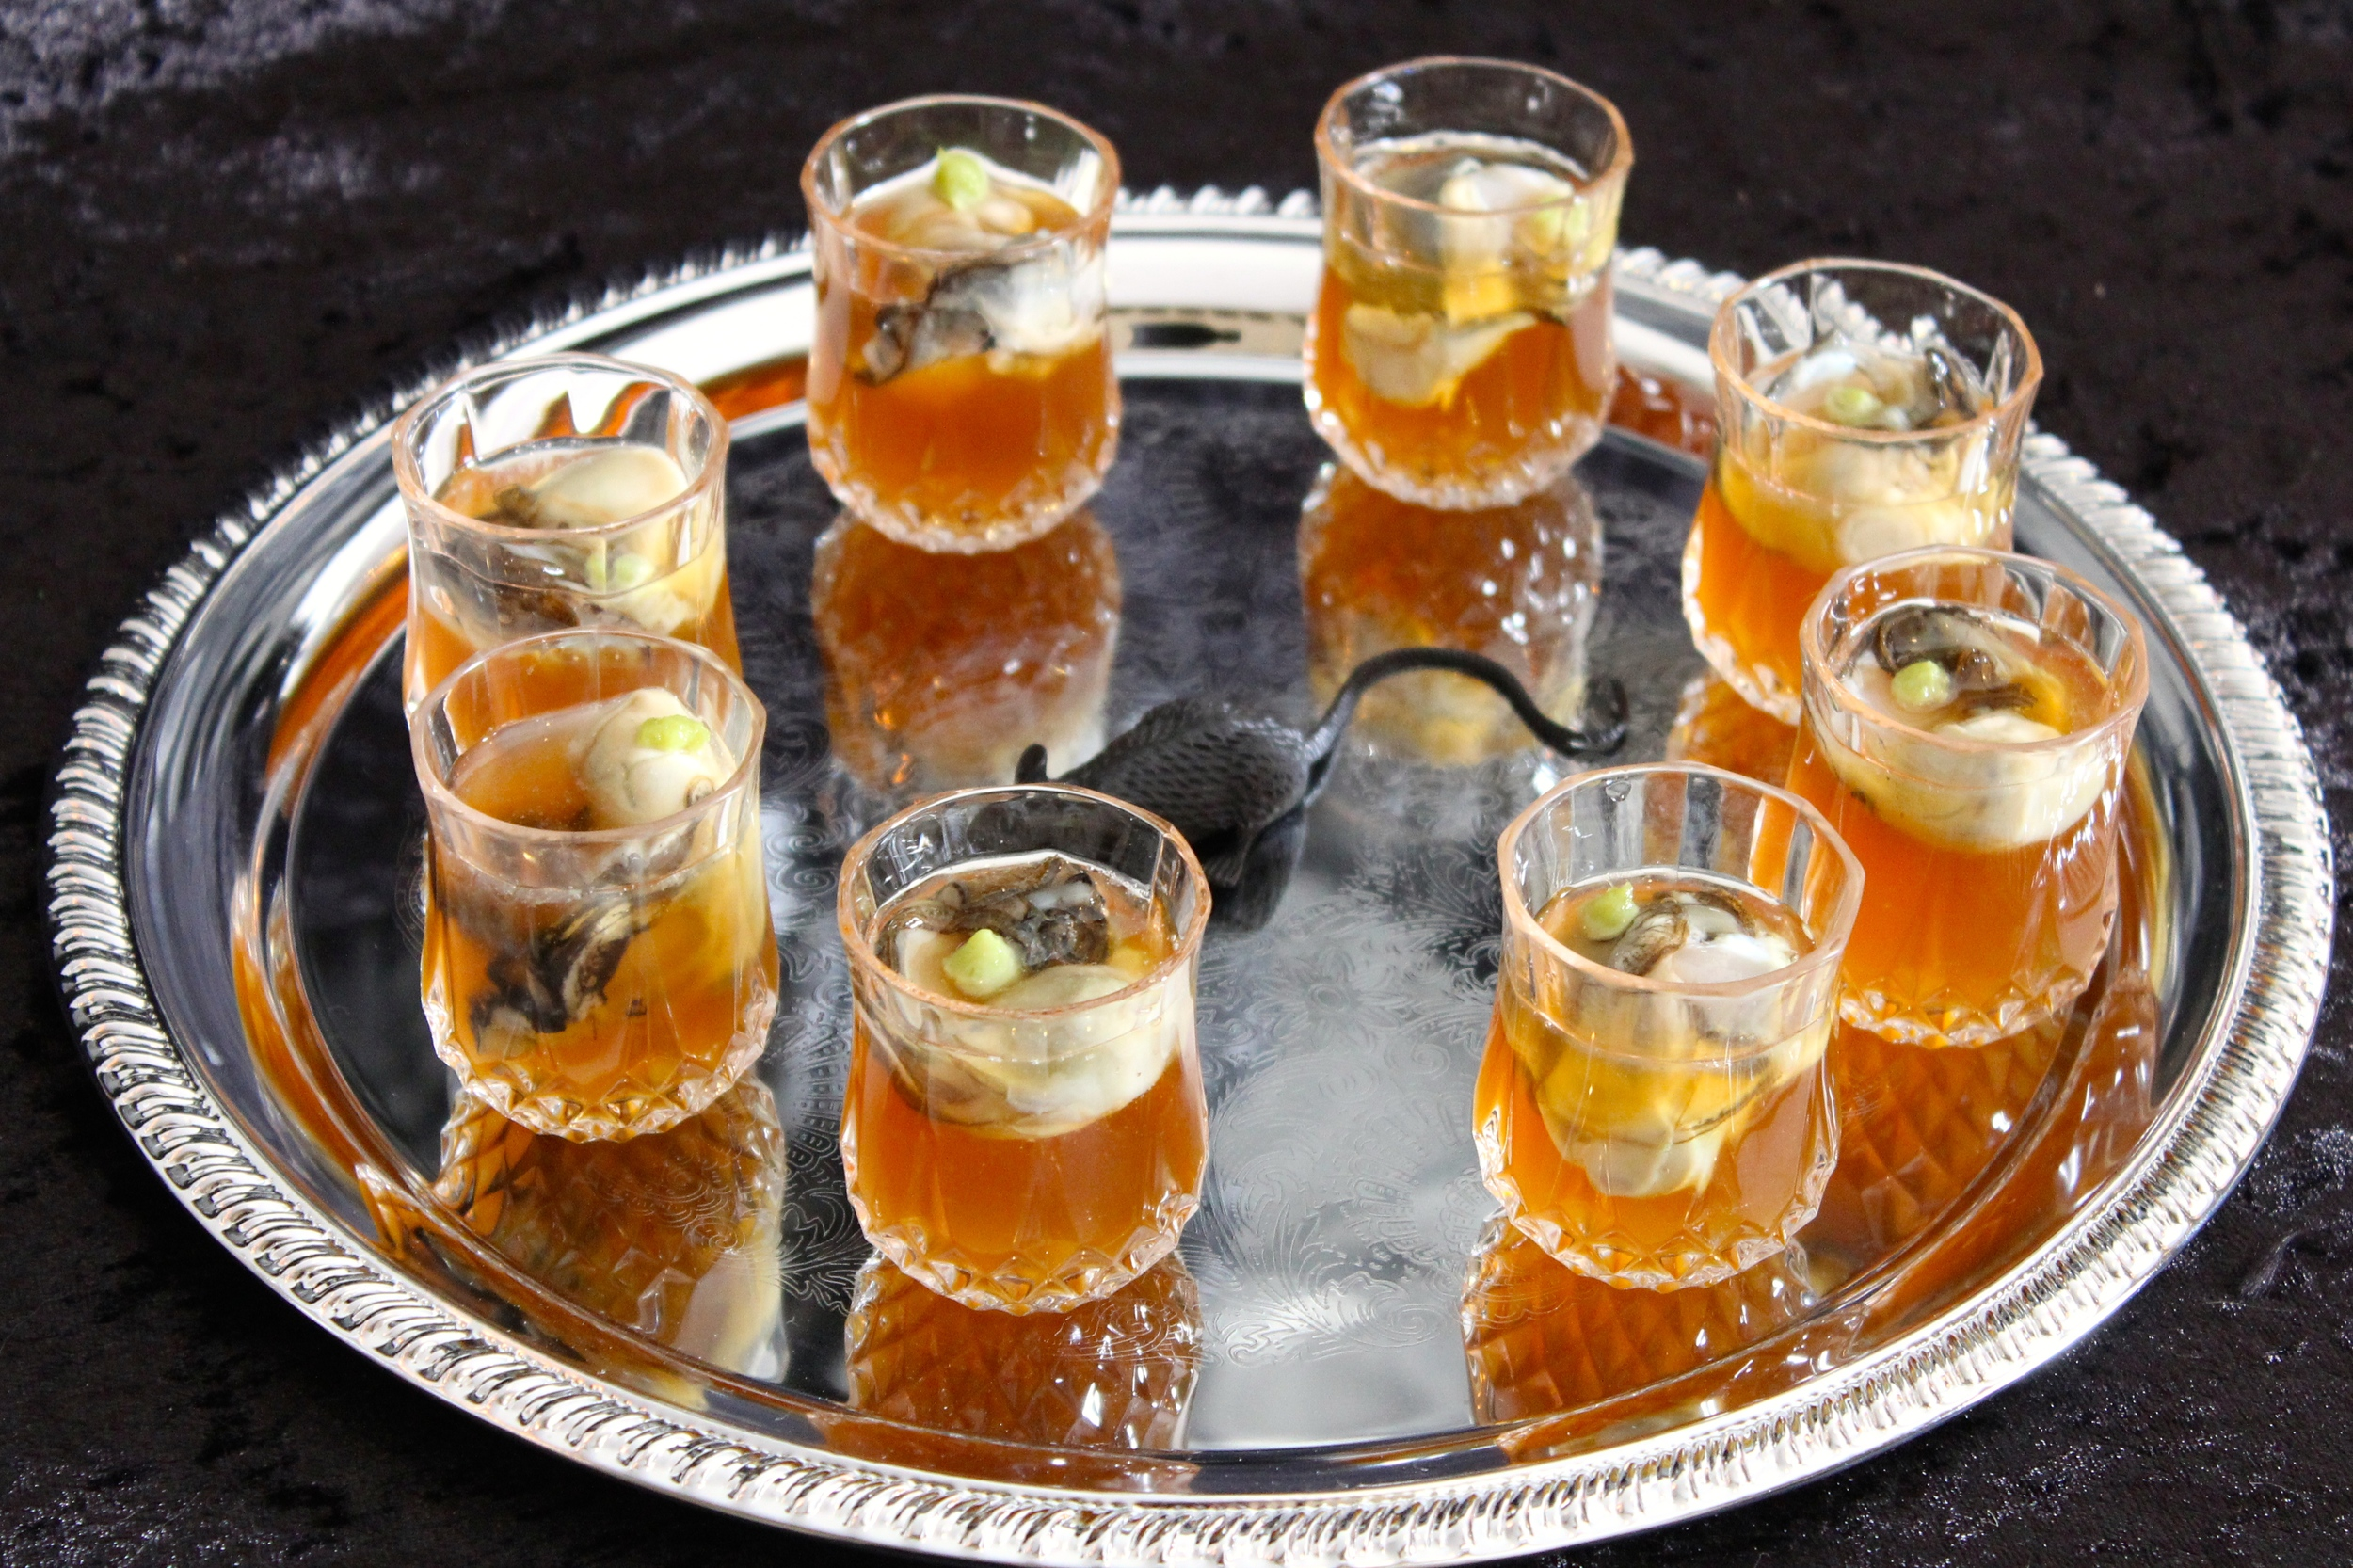 Gothic Dinner Party - Oyster Shooters